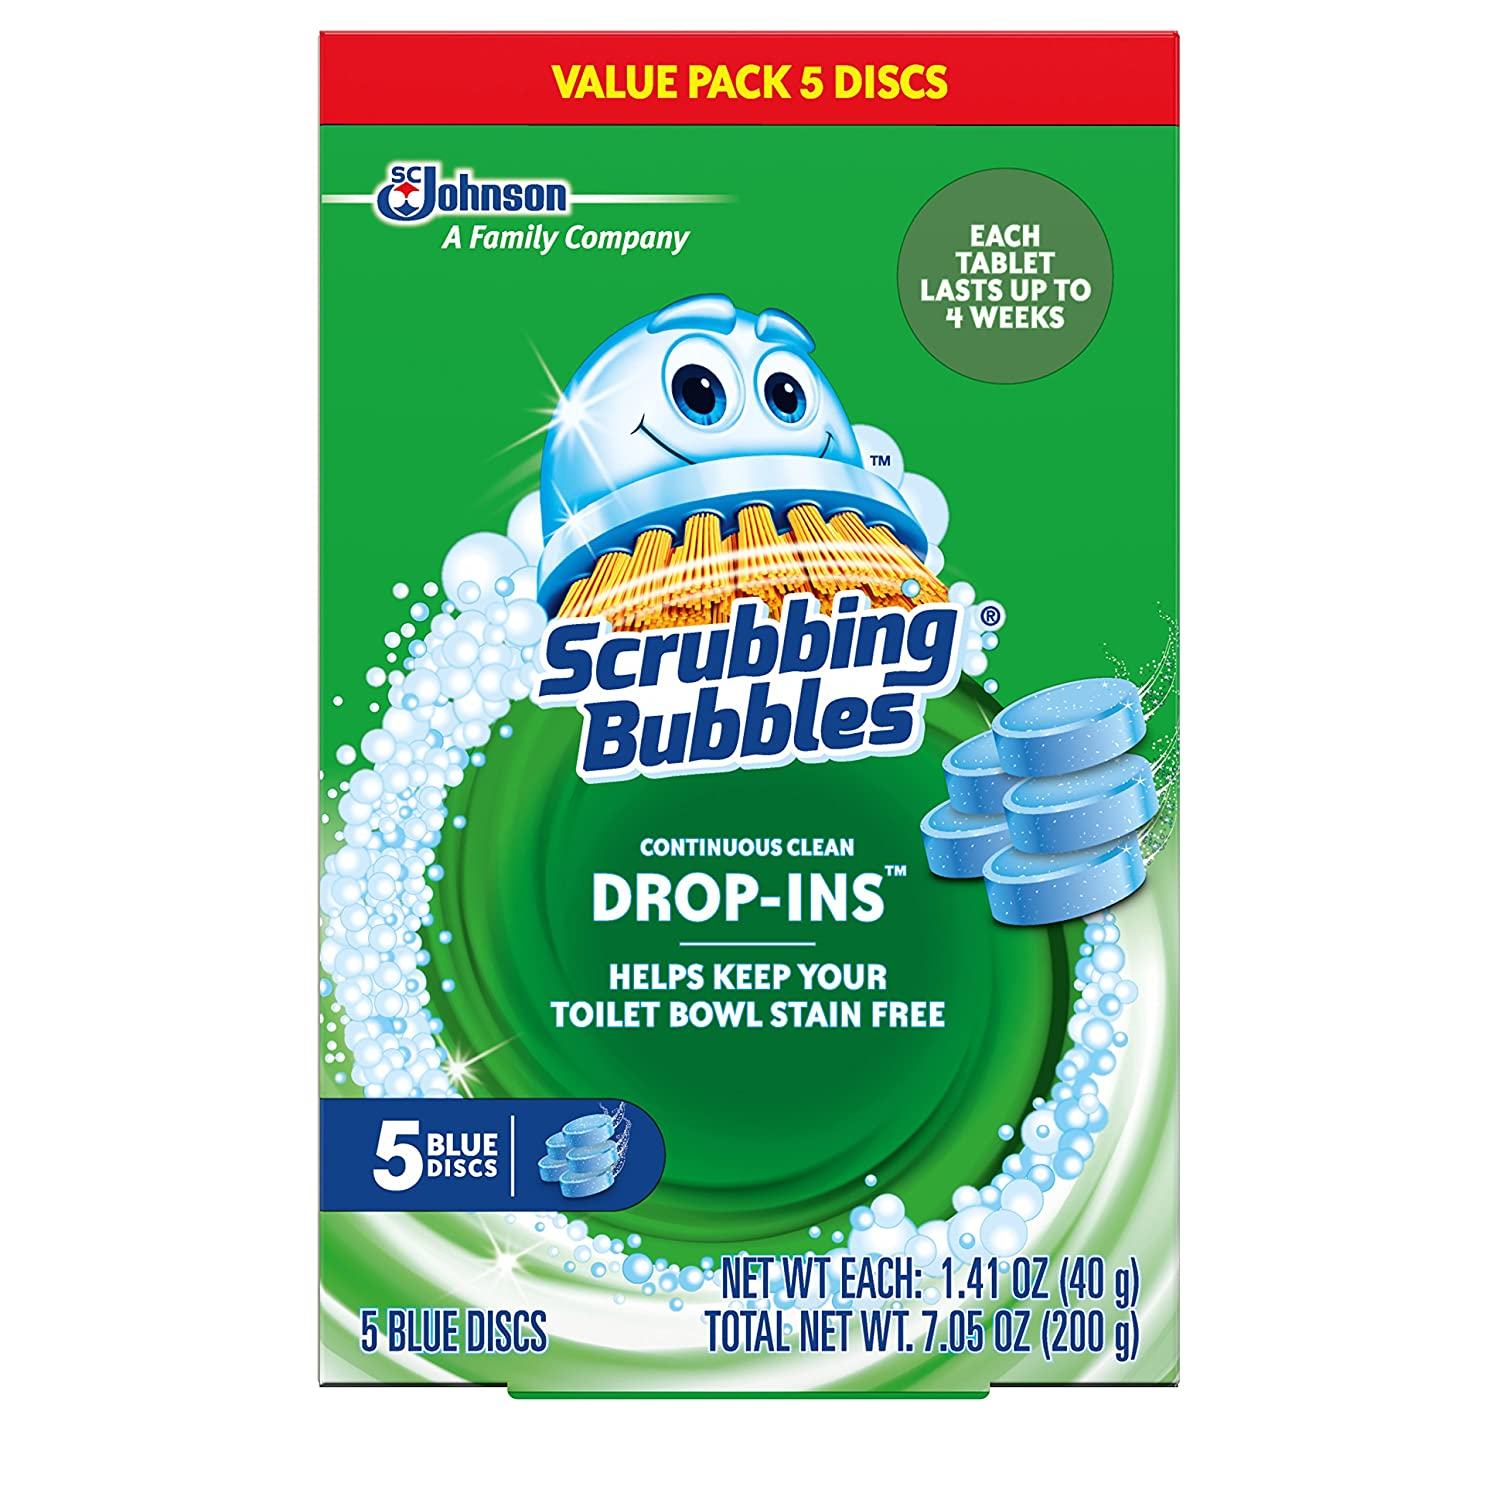 Scrubbing Bubbles Toilet Cleaner Drop Ins, 5 Count, 7.1 Ounce by Scrubbing Bubbles B015VBOE1S